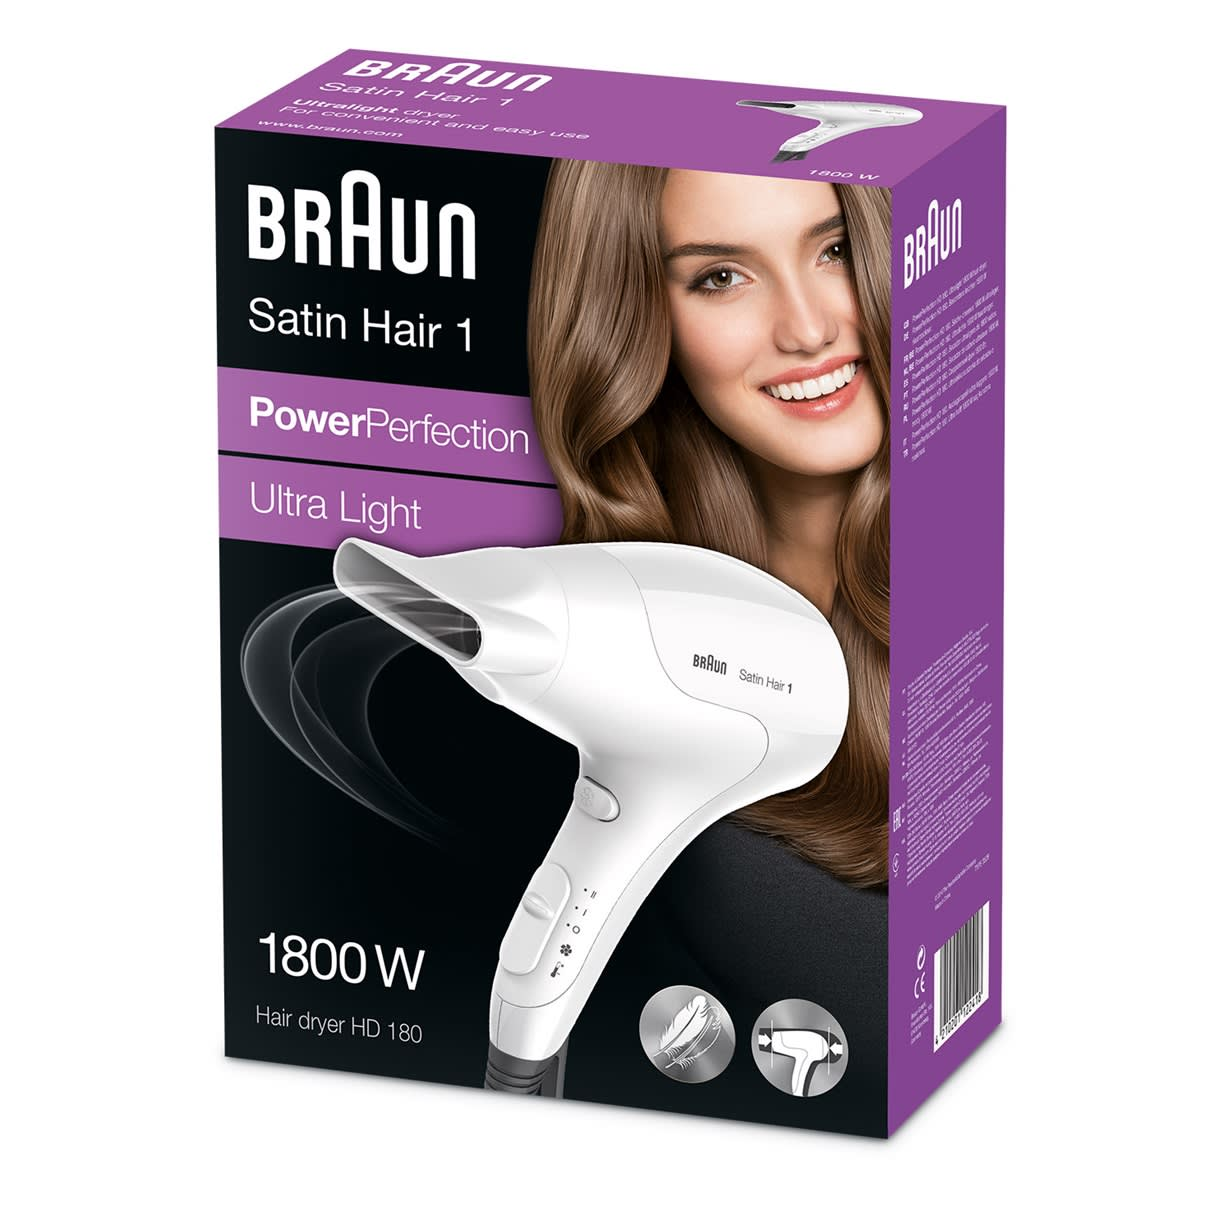 Satin Hair 1 HD 180 Power Perfection Haartrockner Verpackung